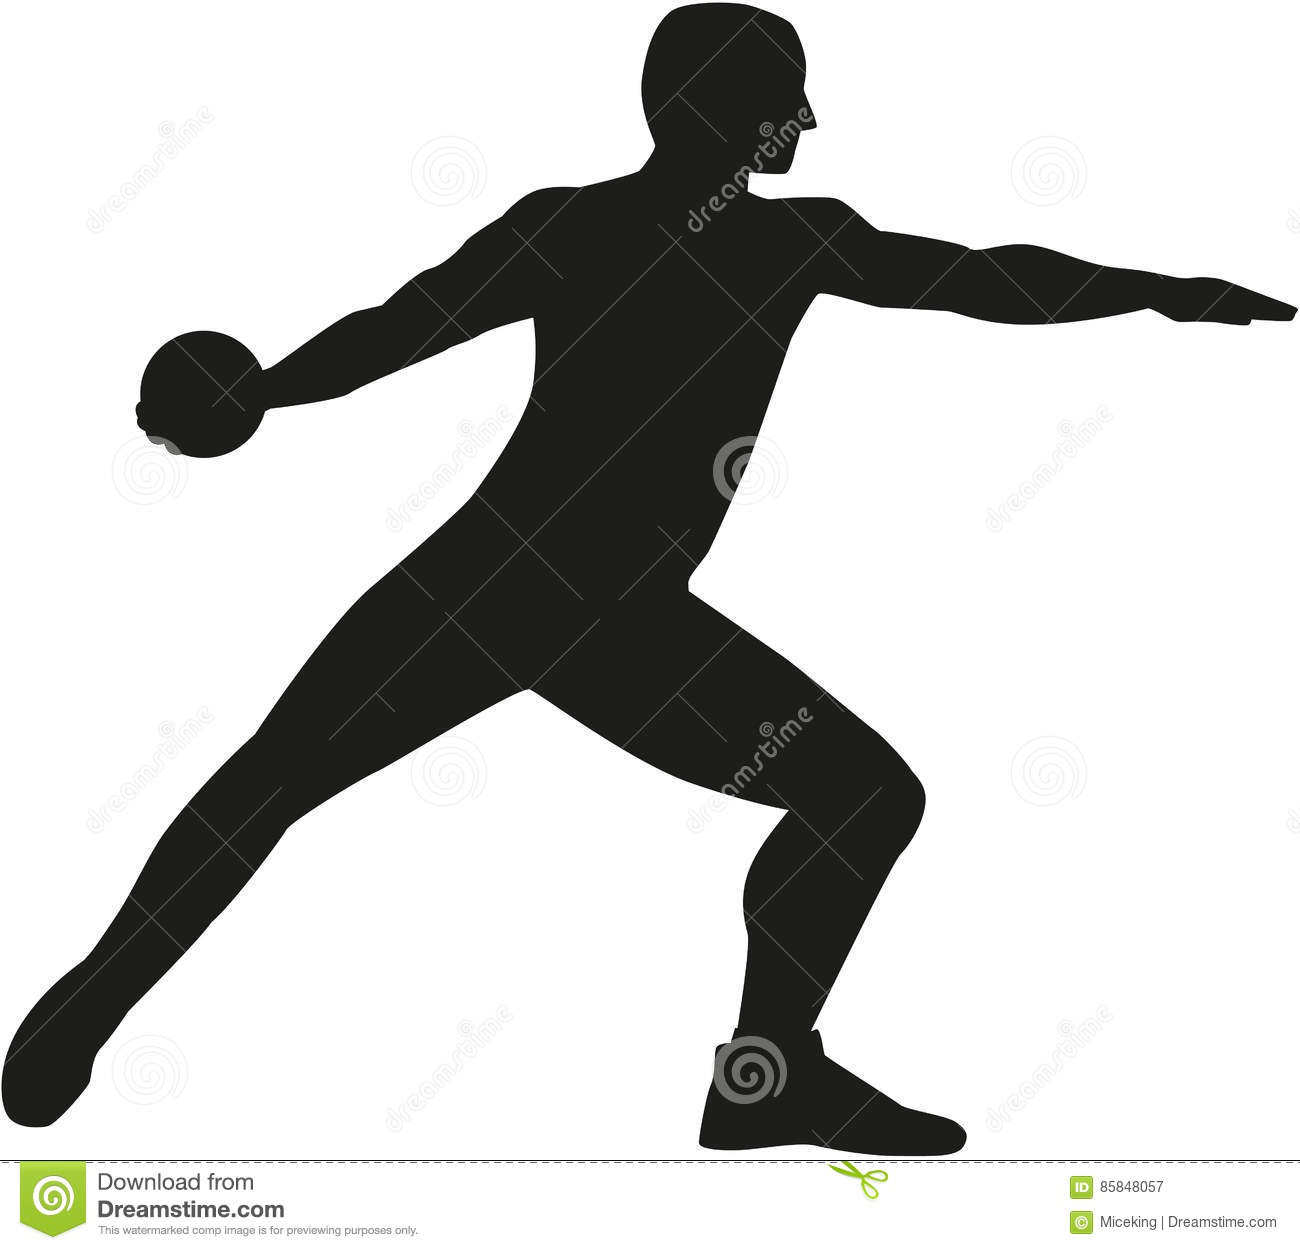 Discus thrower silhouette — Stock Vector © miceking #139143506 |Discus Thrower Silhouette